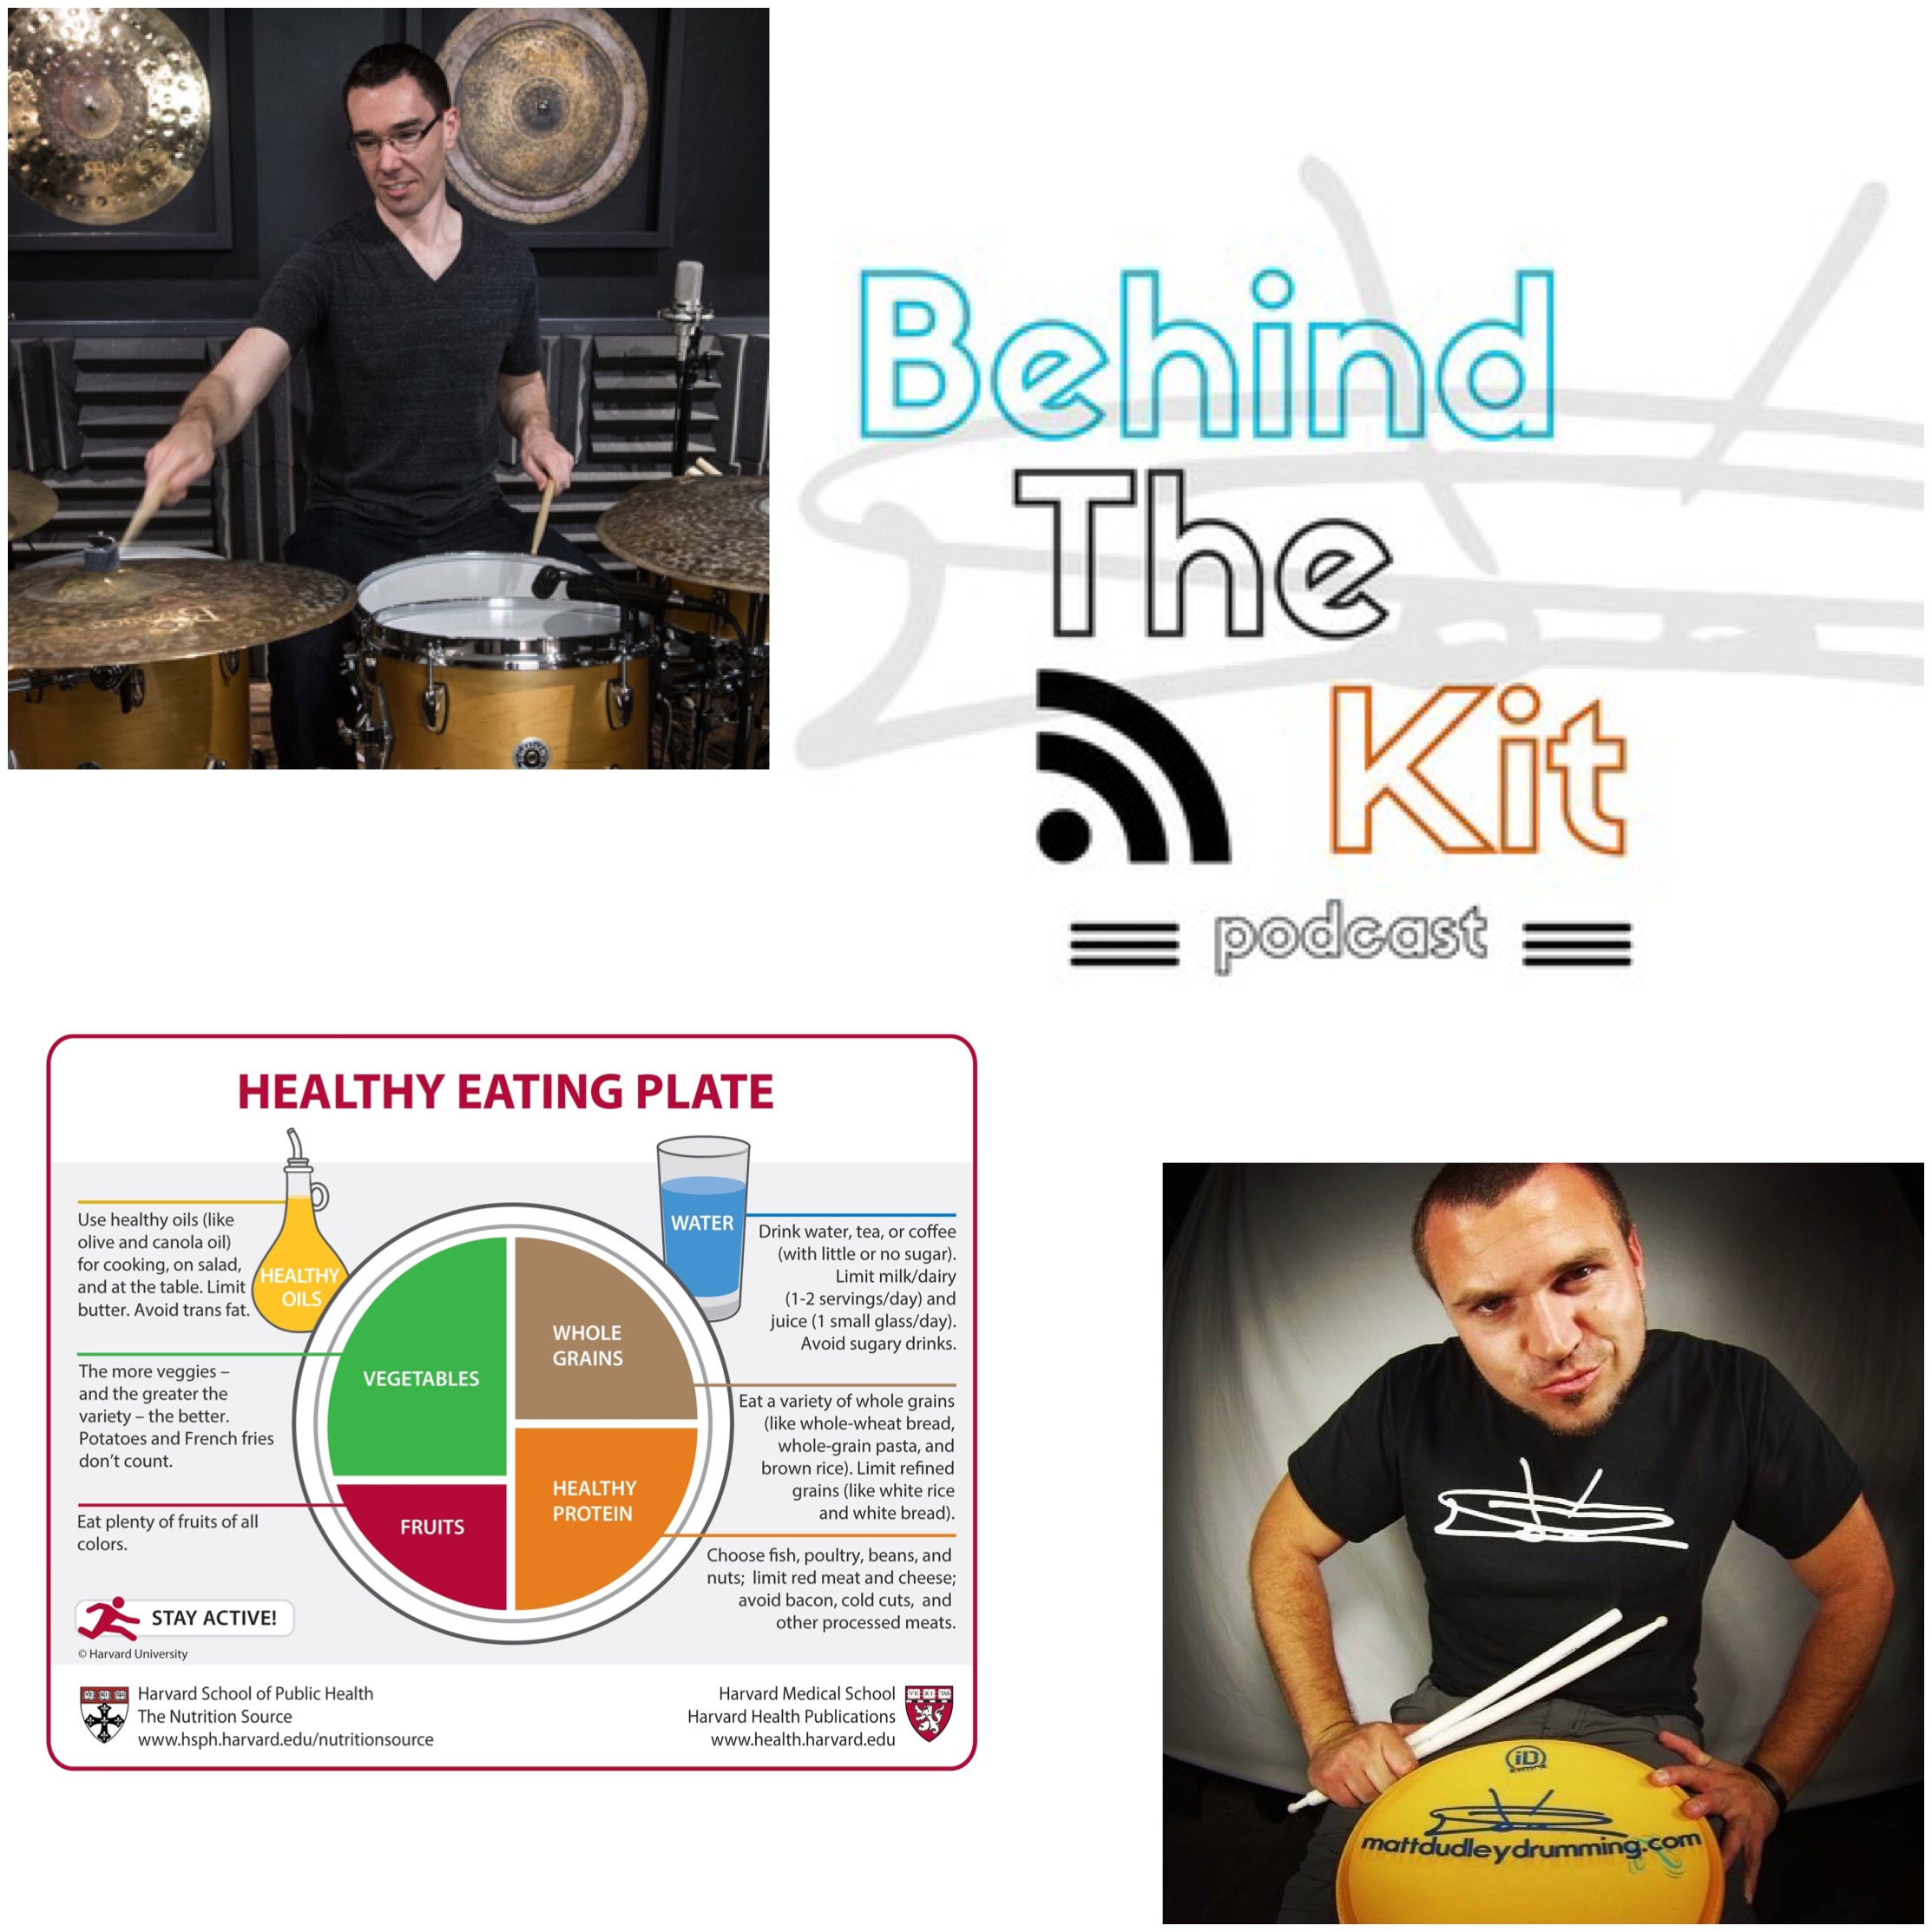 Behind The Kit Podcast episode #57 Nutrition |